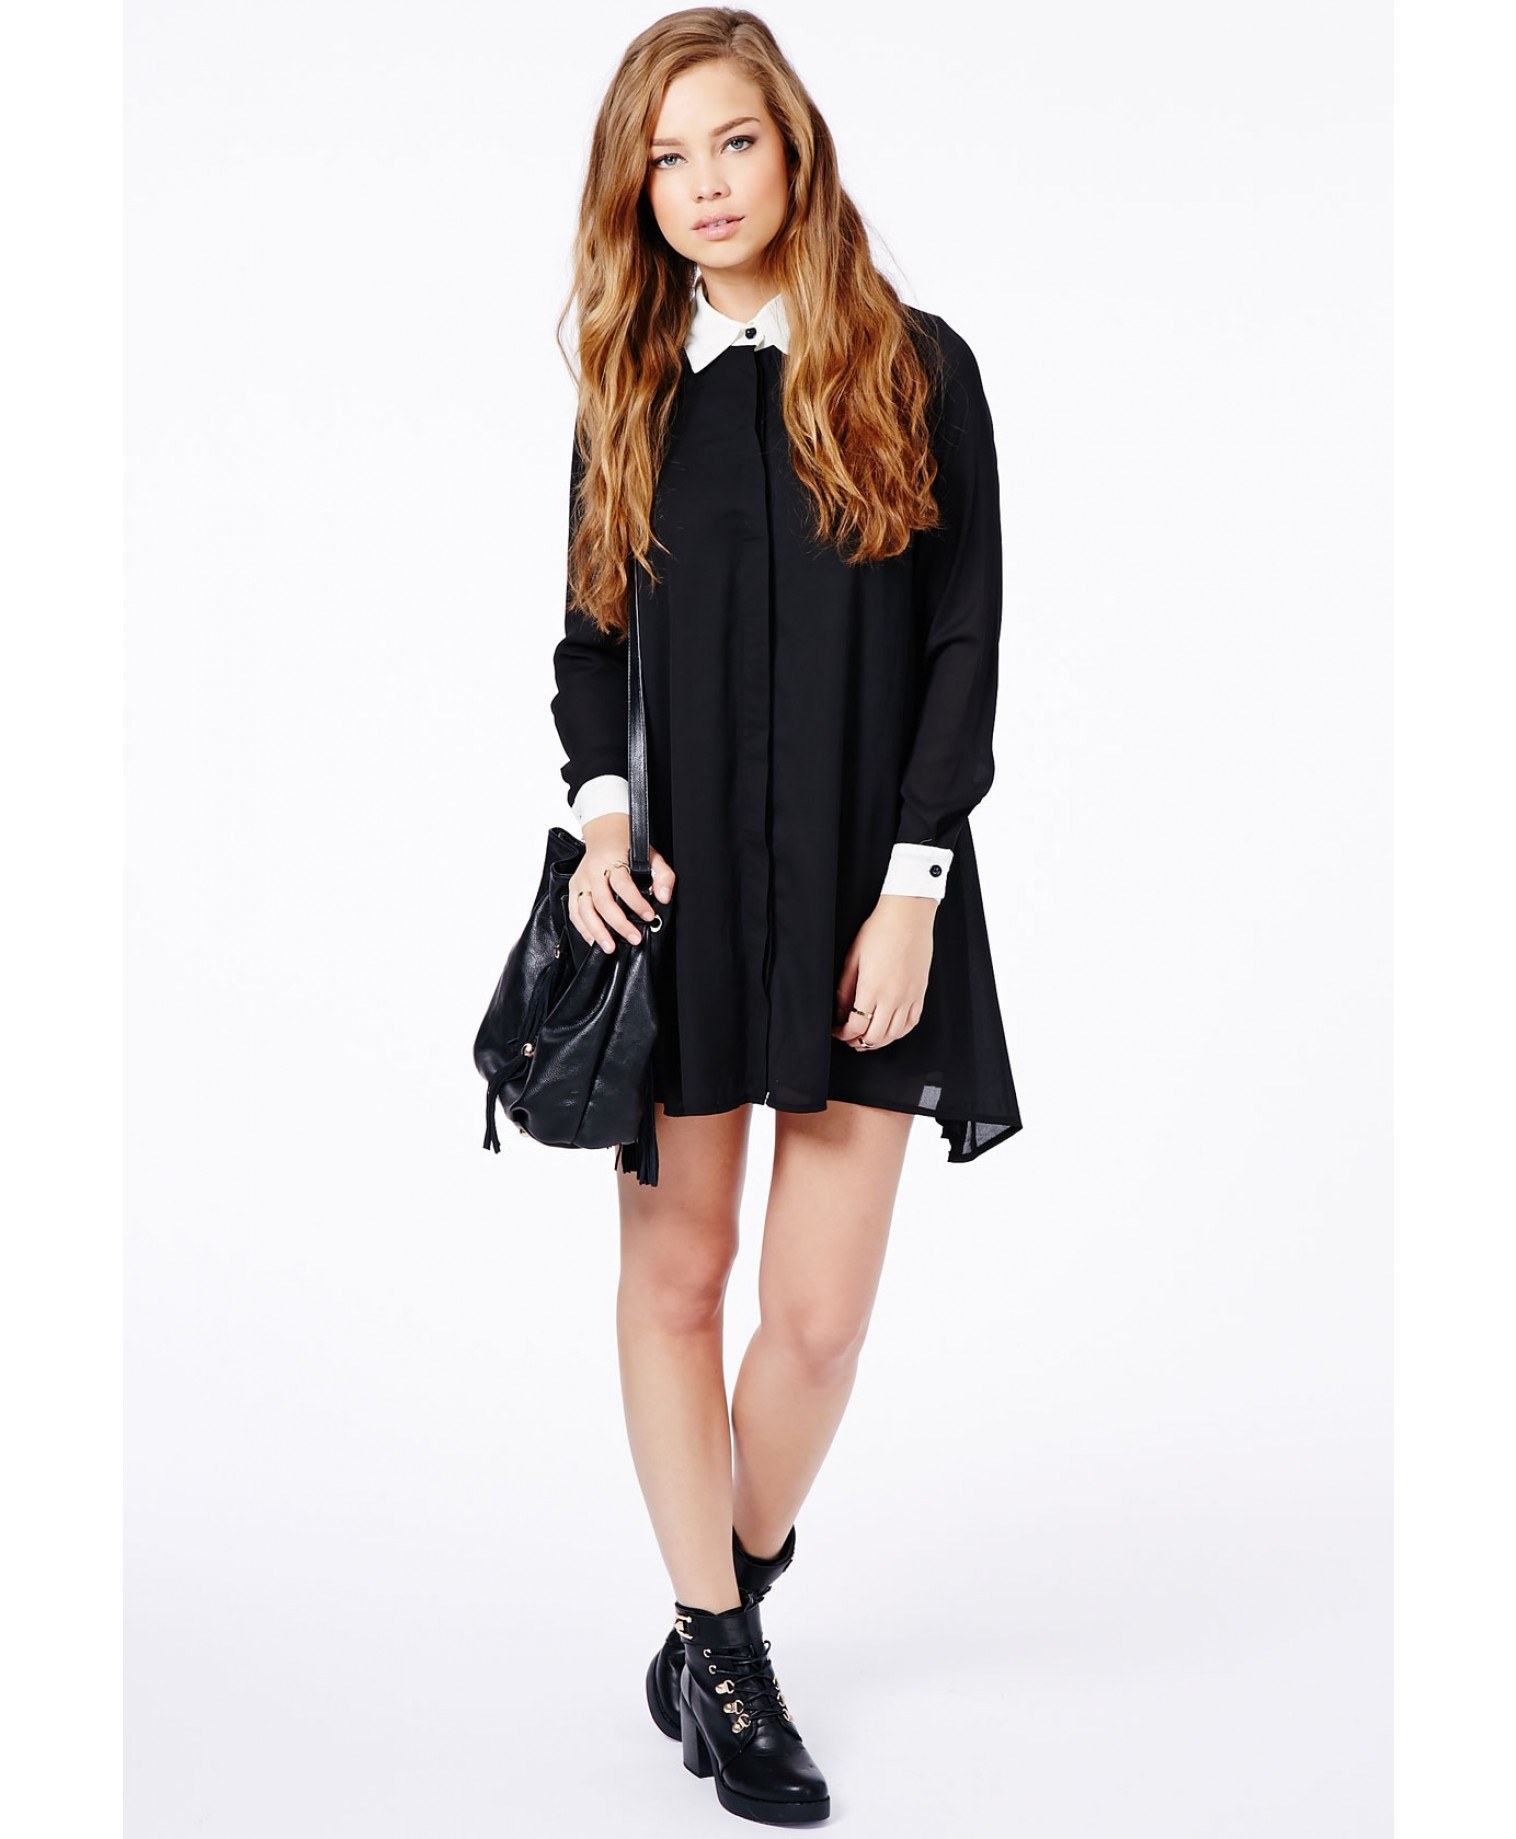 Missguided Callie Monochrome Collared Shirt Dress in Black | Lyst